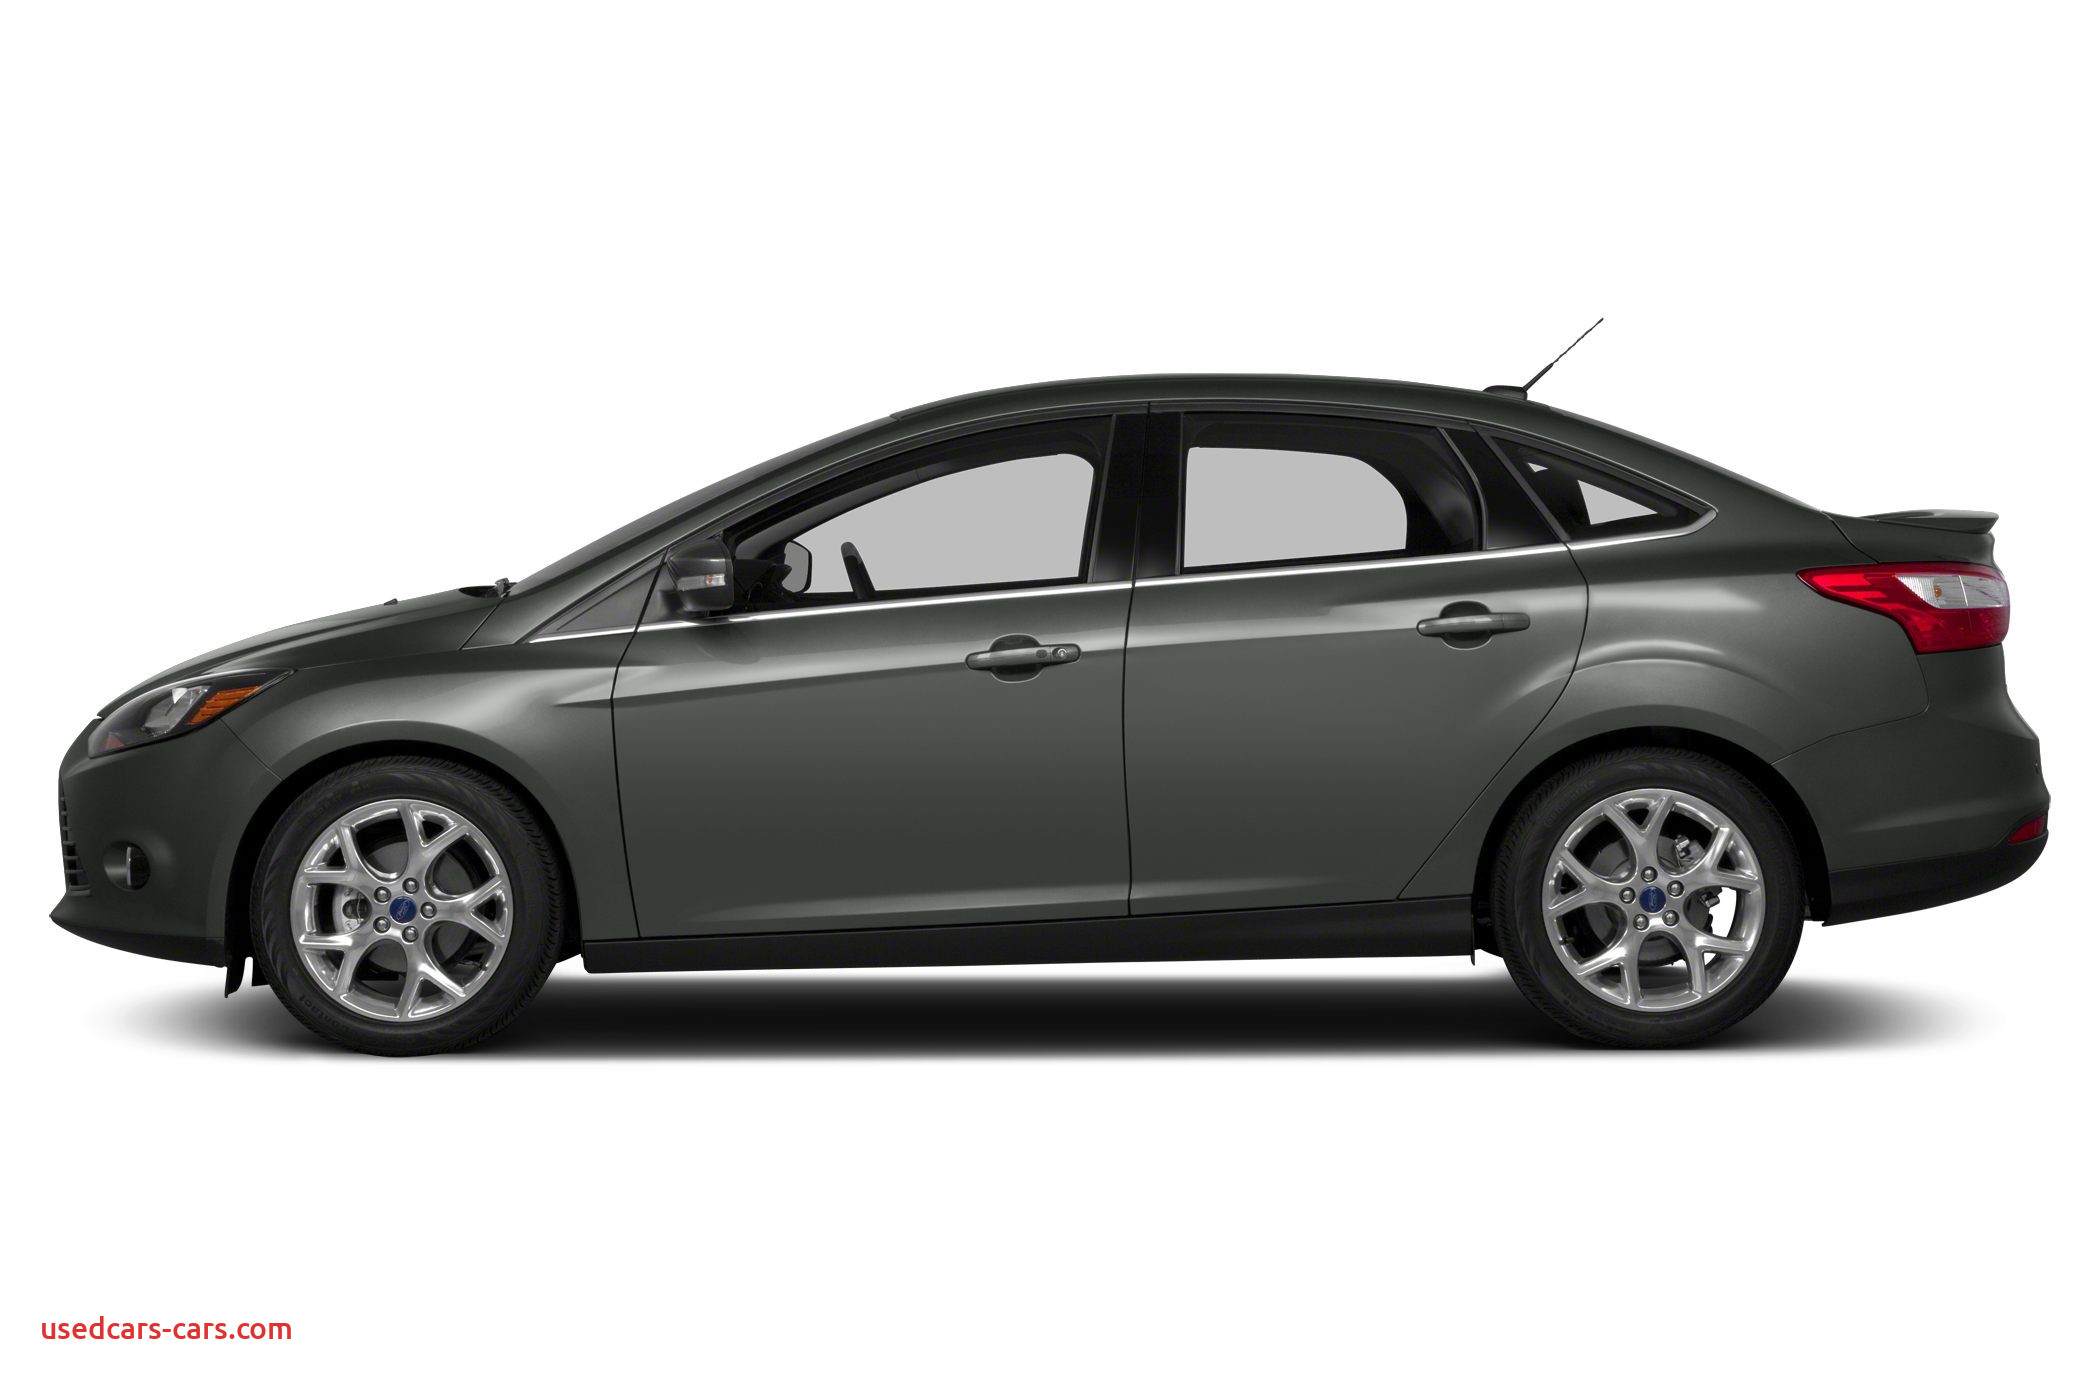 Ford Focus 2014 New 2014 ford Focus Price Photos Reviews Features